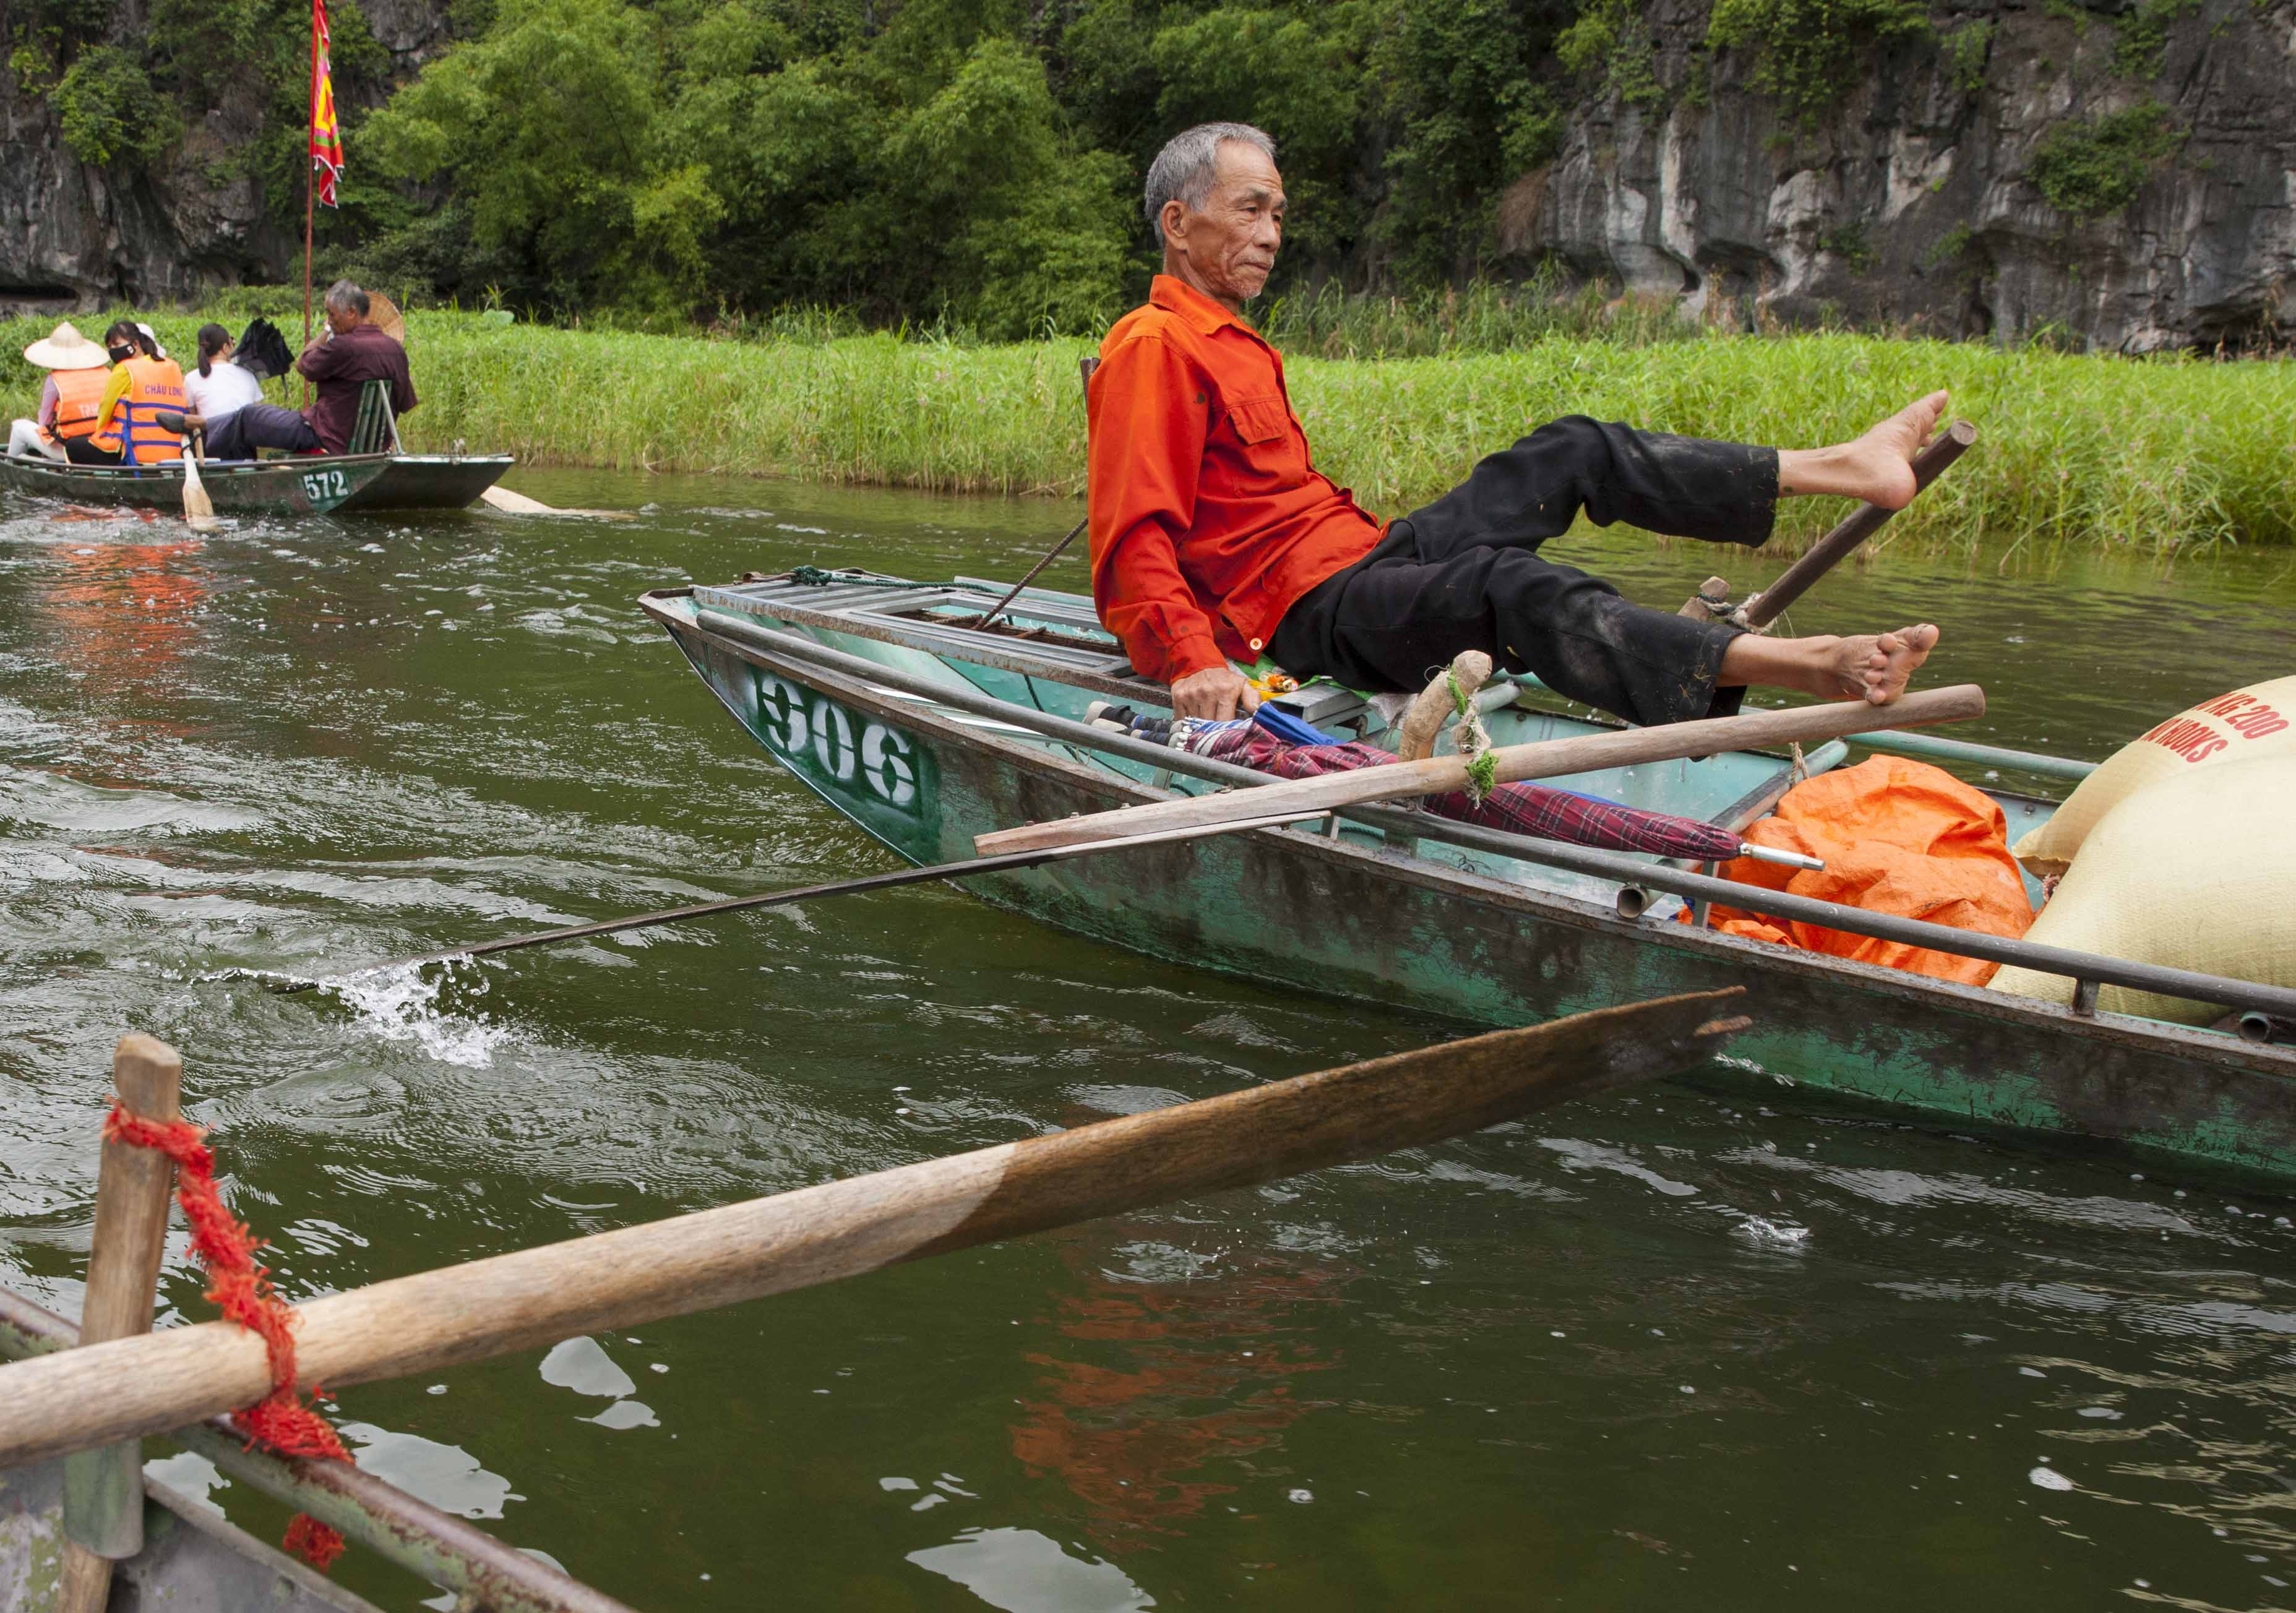 A-man-is-rowing-boat-ride-at-tam-coc - Hanoi Explore Travel